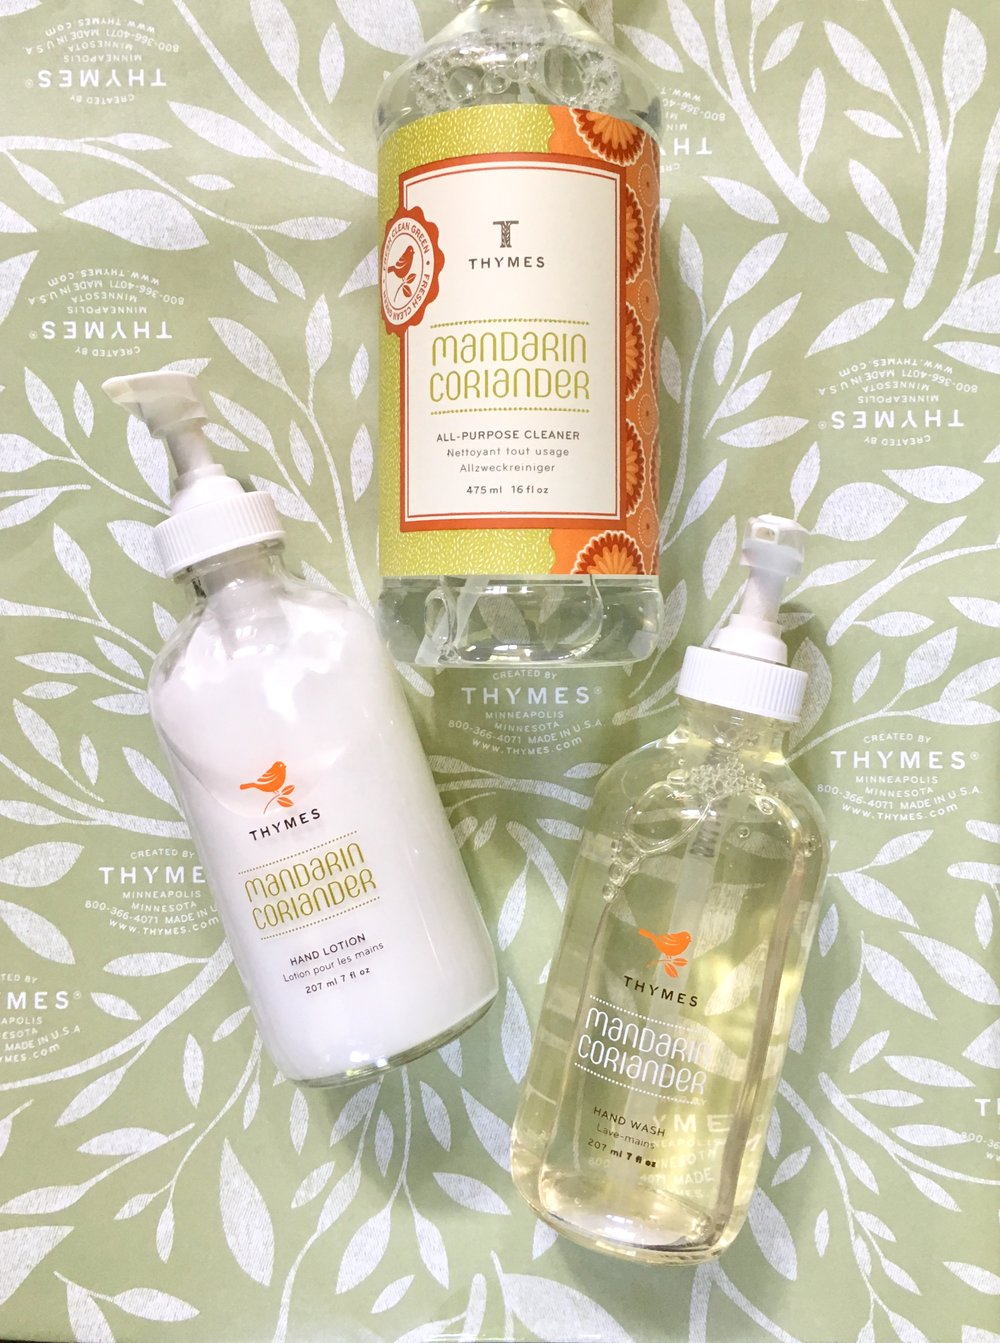 Thymes Mandarin Coriander Hand Lotion, Soap and All-Purpose Cleaner.